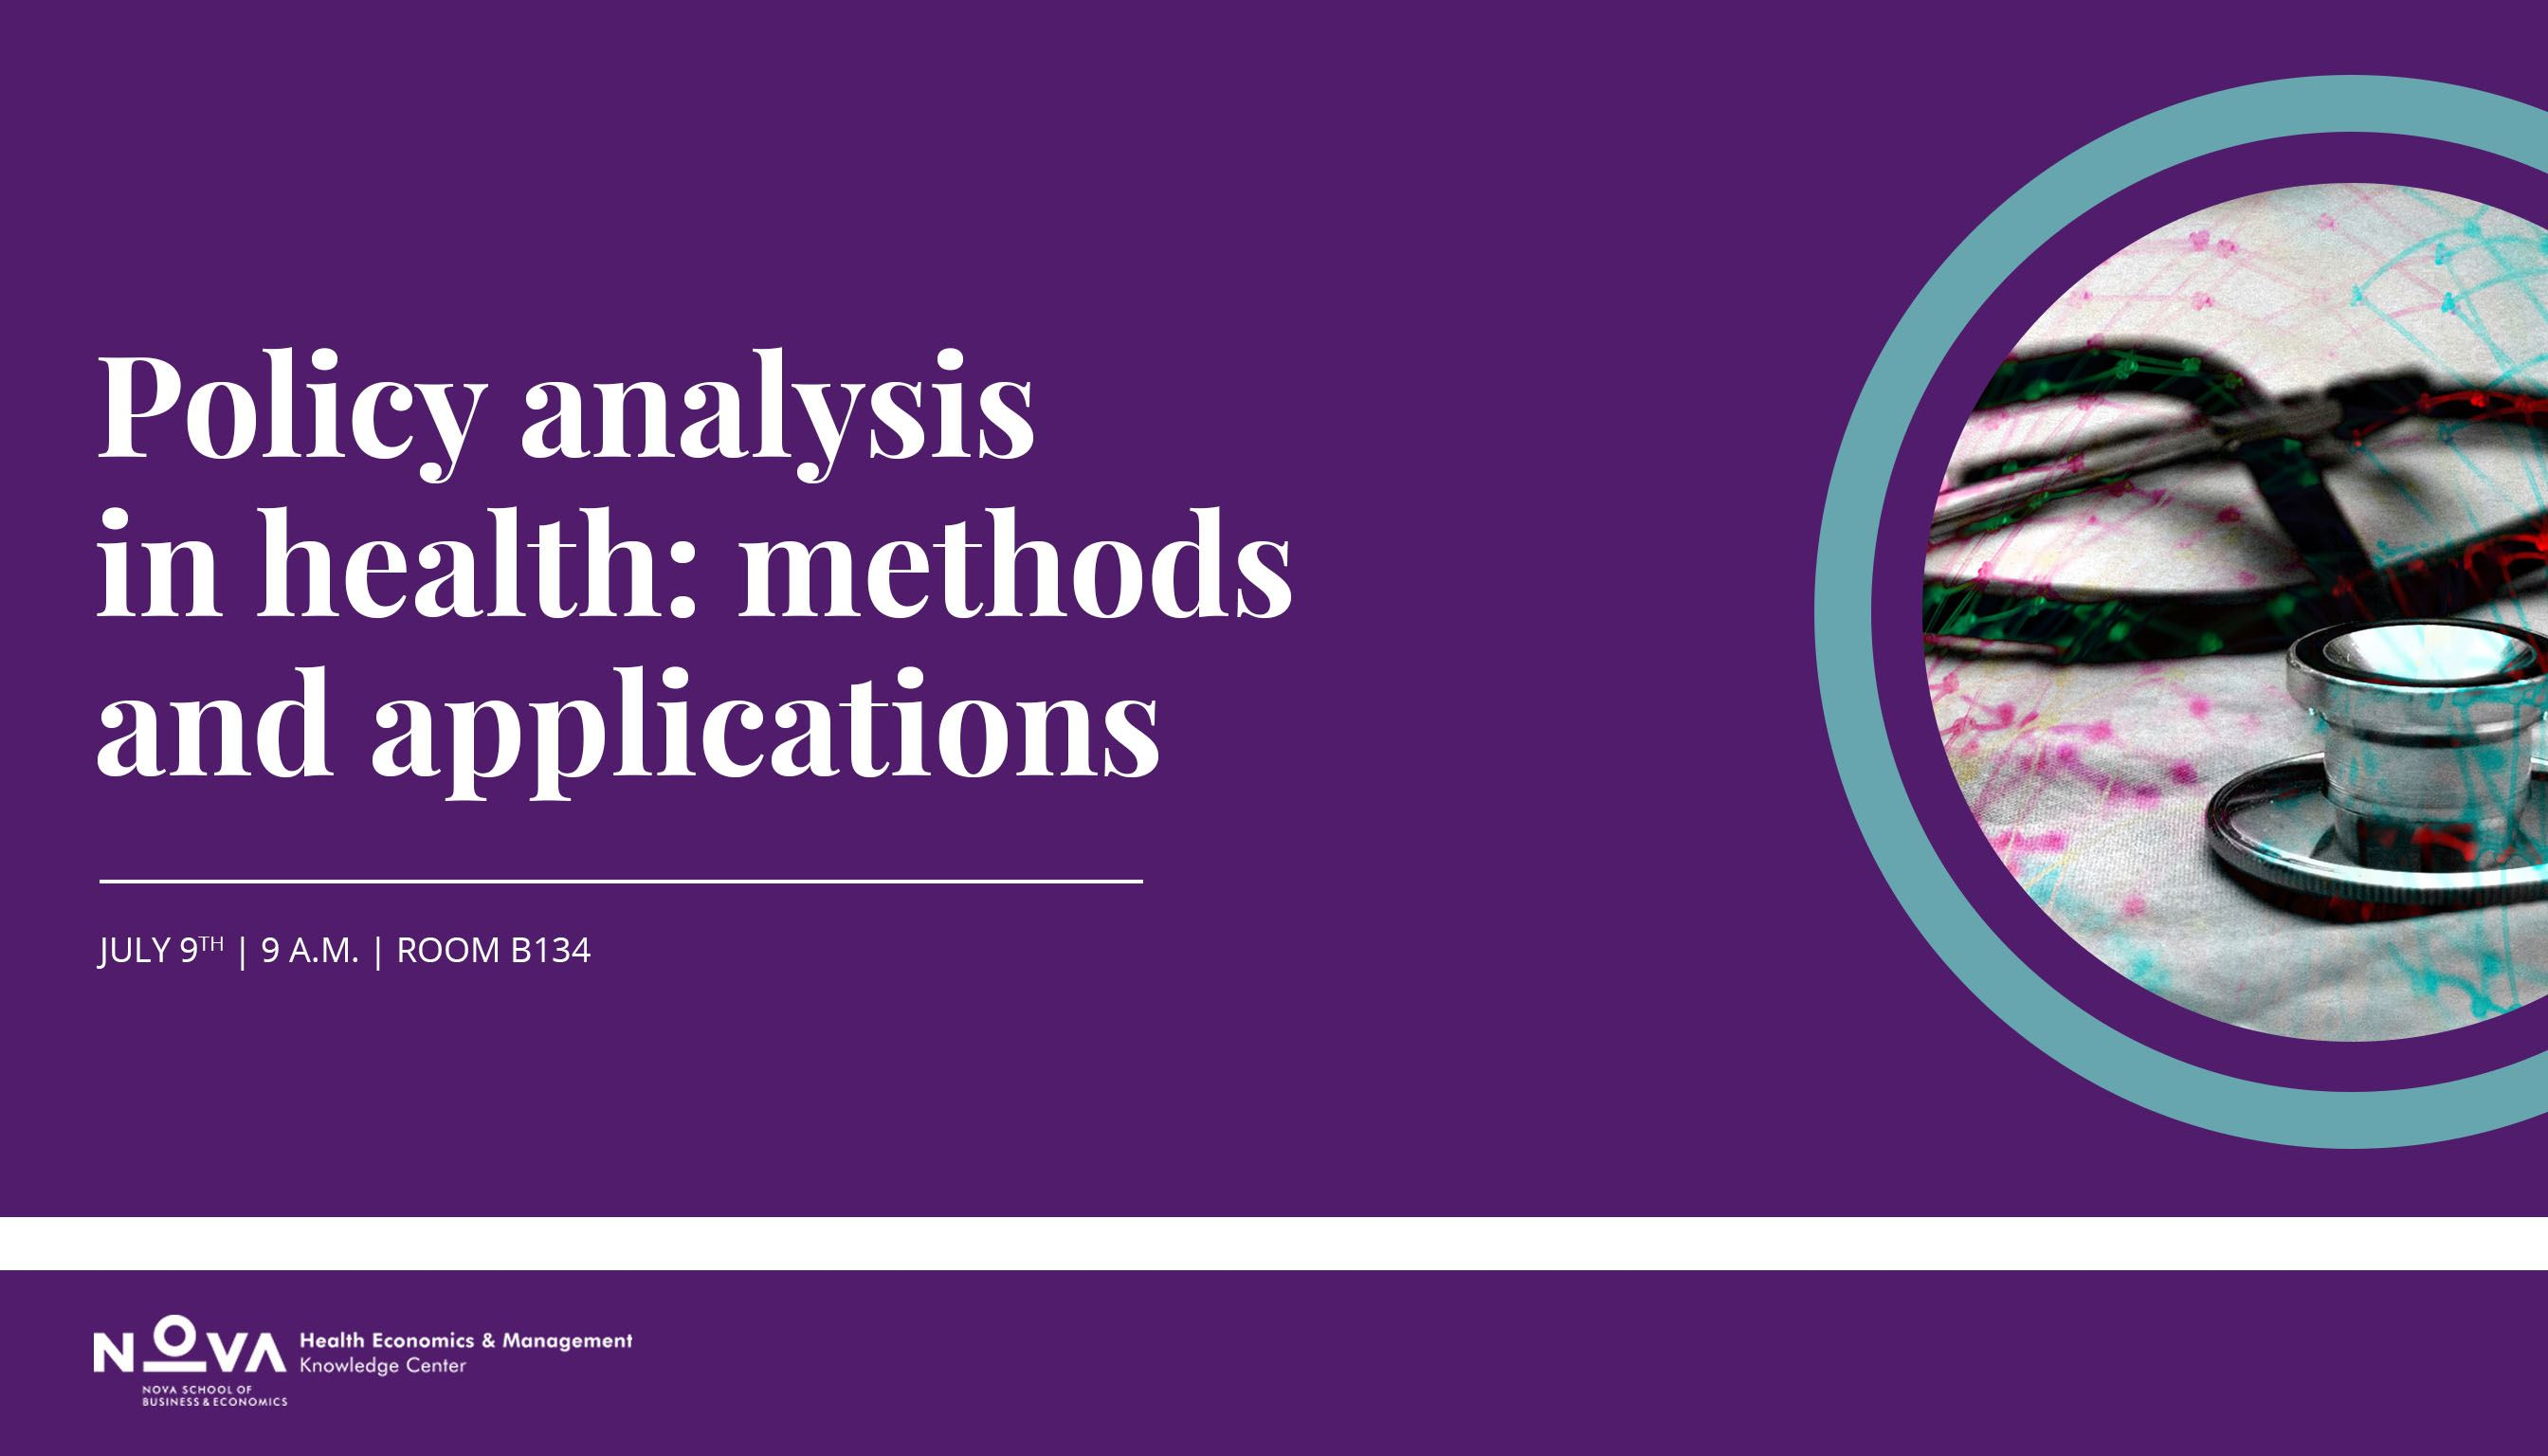 Policy analysis in health: methods and applications